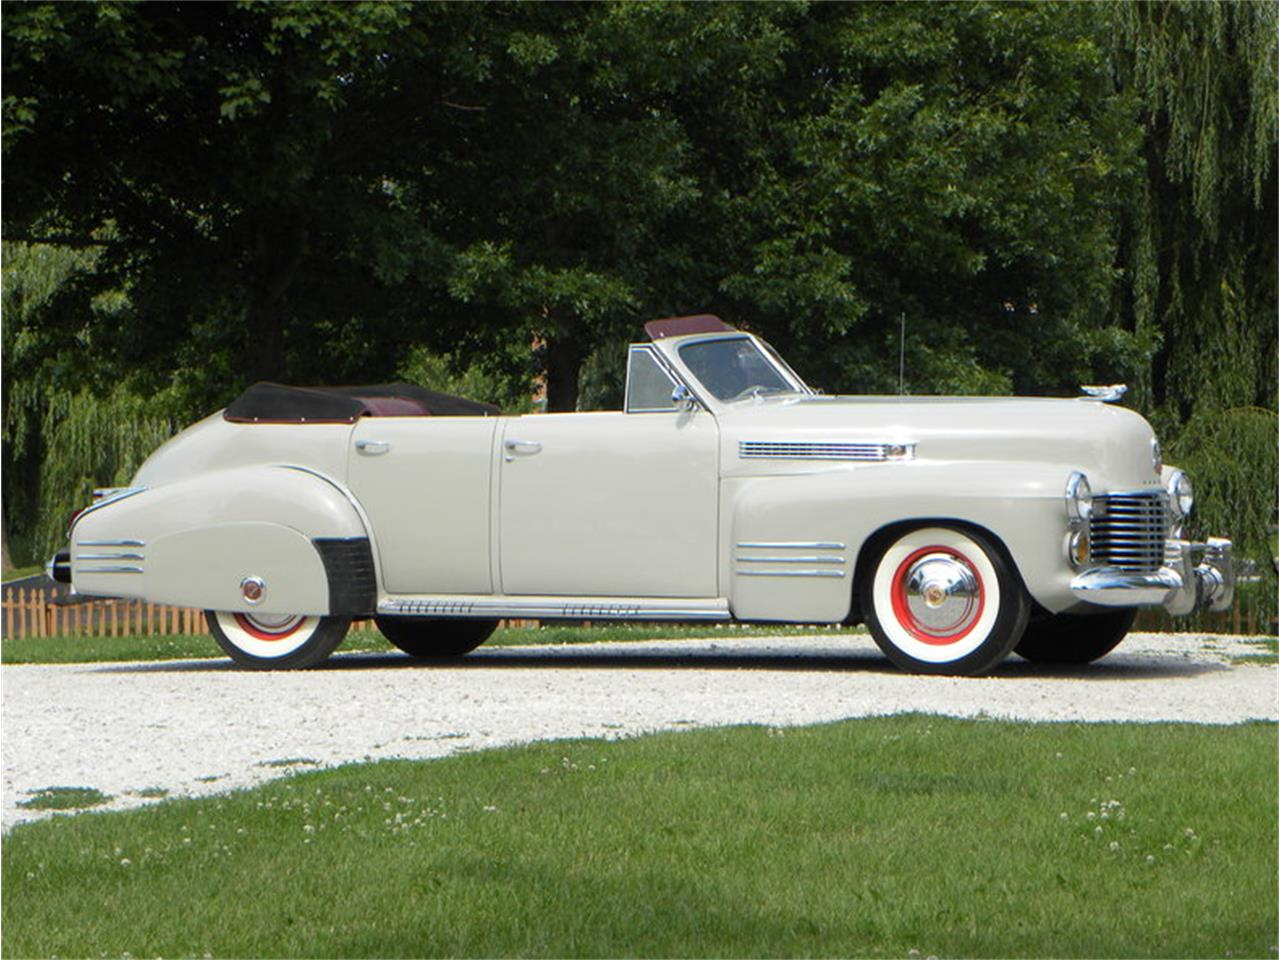 Large Picture of 1941 Series 41-62 Convertible Sedan located in Volo Illinois - LGAA